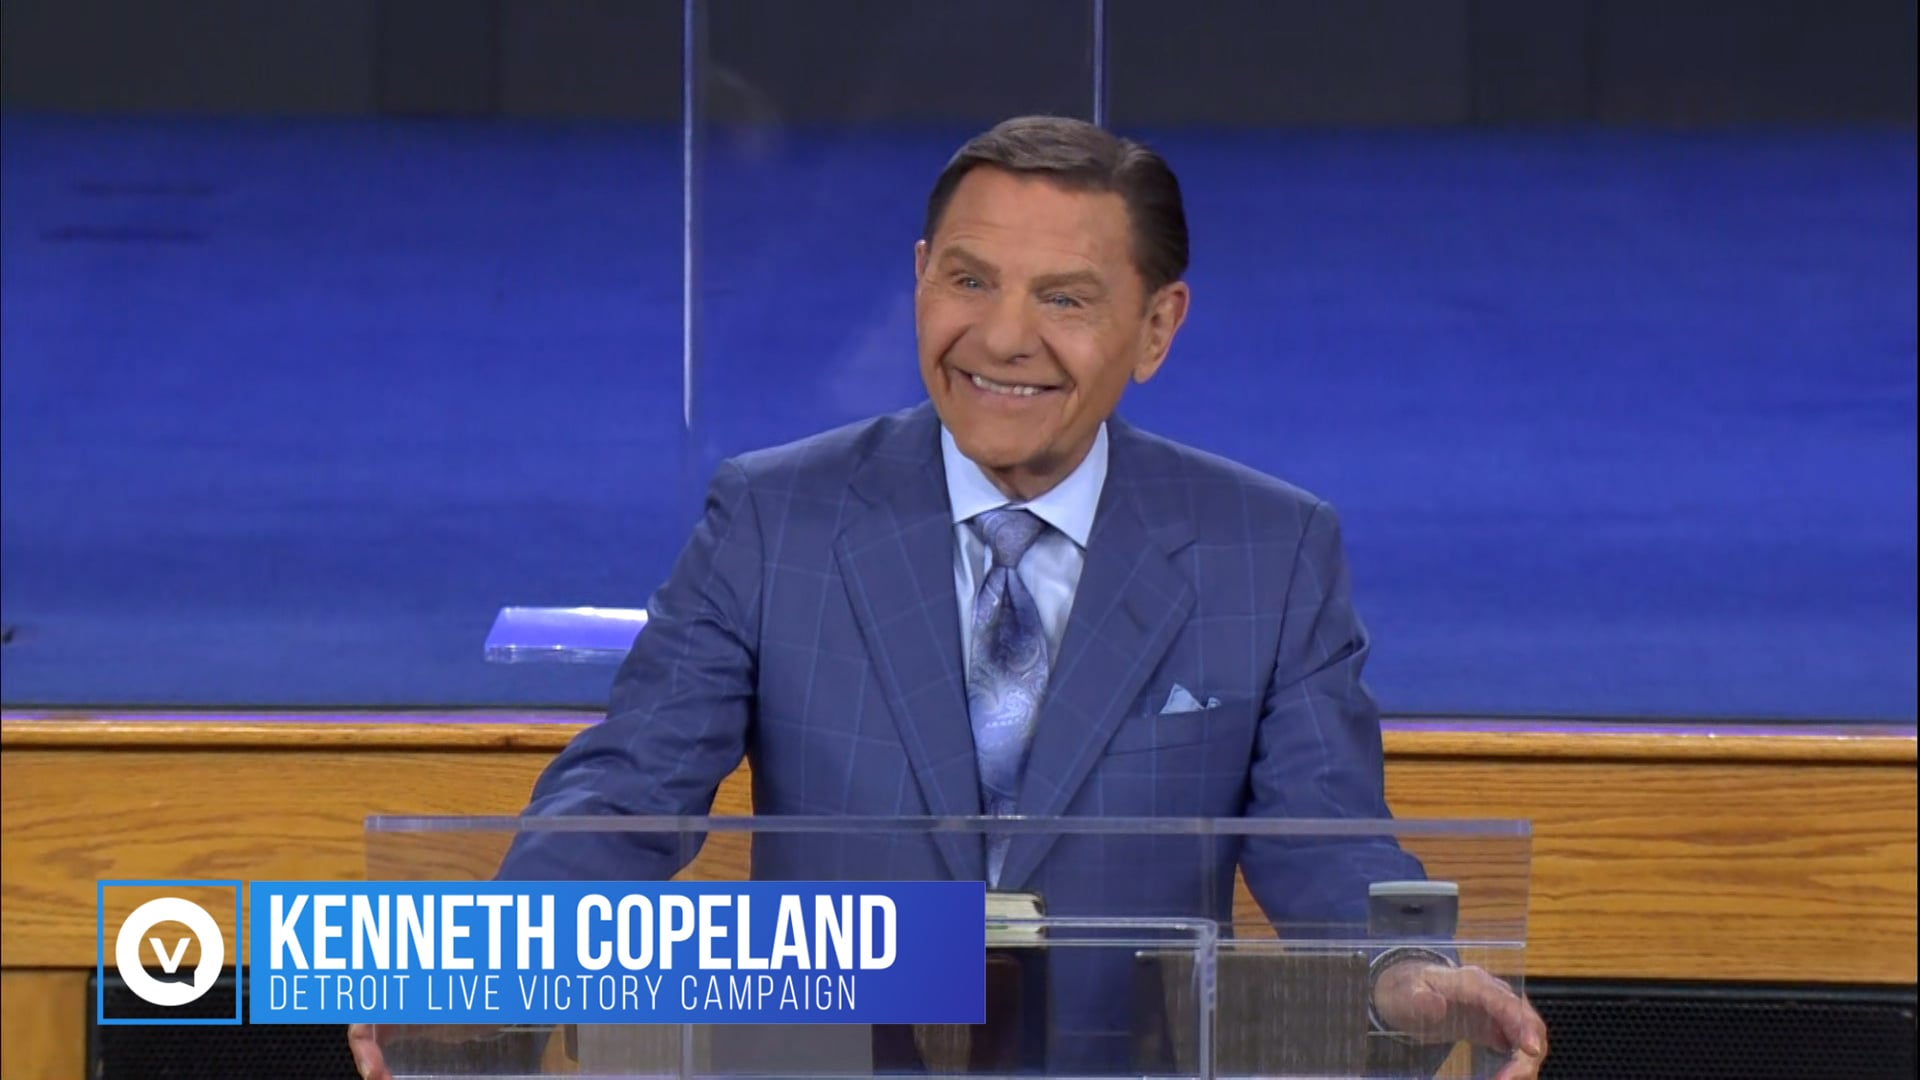 """Join Kenneth Copeland at the 2021 Detroit Victory Campaign as he defines """"the anointing exchange."""" Phil. 4:13 says we can do all things through the anointing. We are carriers of the Anointed One and His Anointing! Jesus was anointed with the Holy Spirit and He resides in us as we go forth to preach the gospel!"""